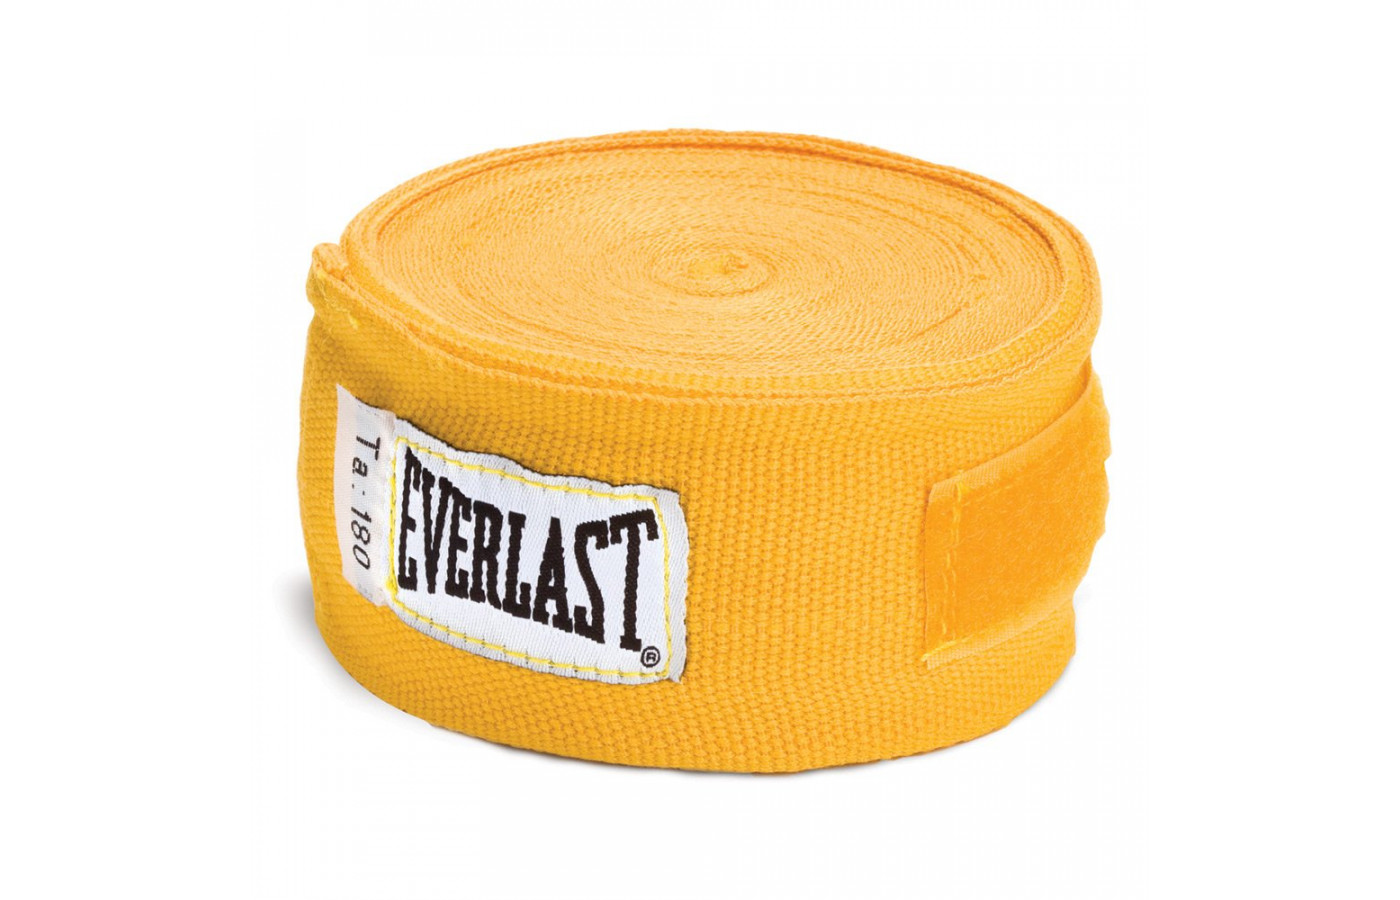 Everlast wraps yellow